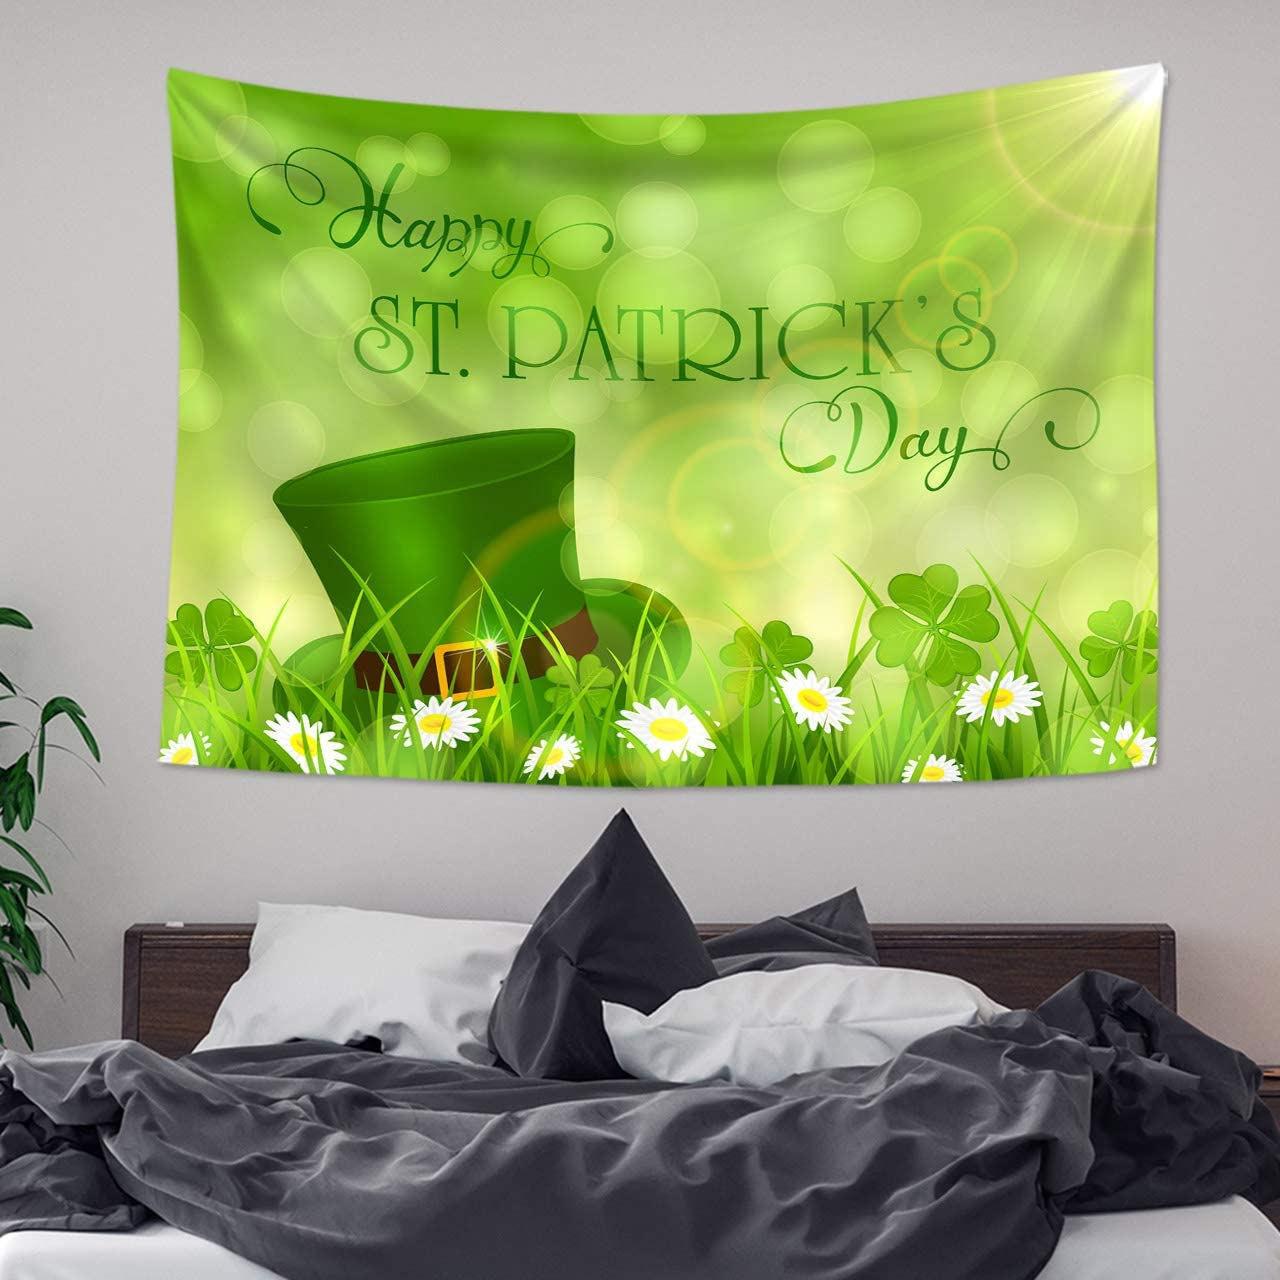 LB Happy St.Patrick s Day Tapestry Green Hats with Four Leaf Clover Daisy Tapestry for Spring Irish Festival Party Tapestry Wall Art Bedroom Living Room Dorm Decor 93 Wx71 L